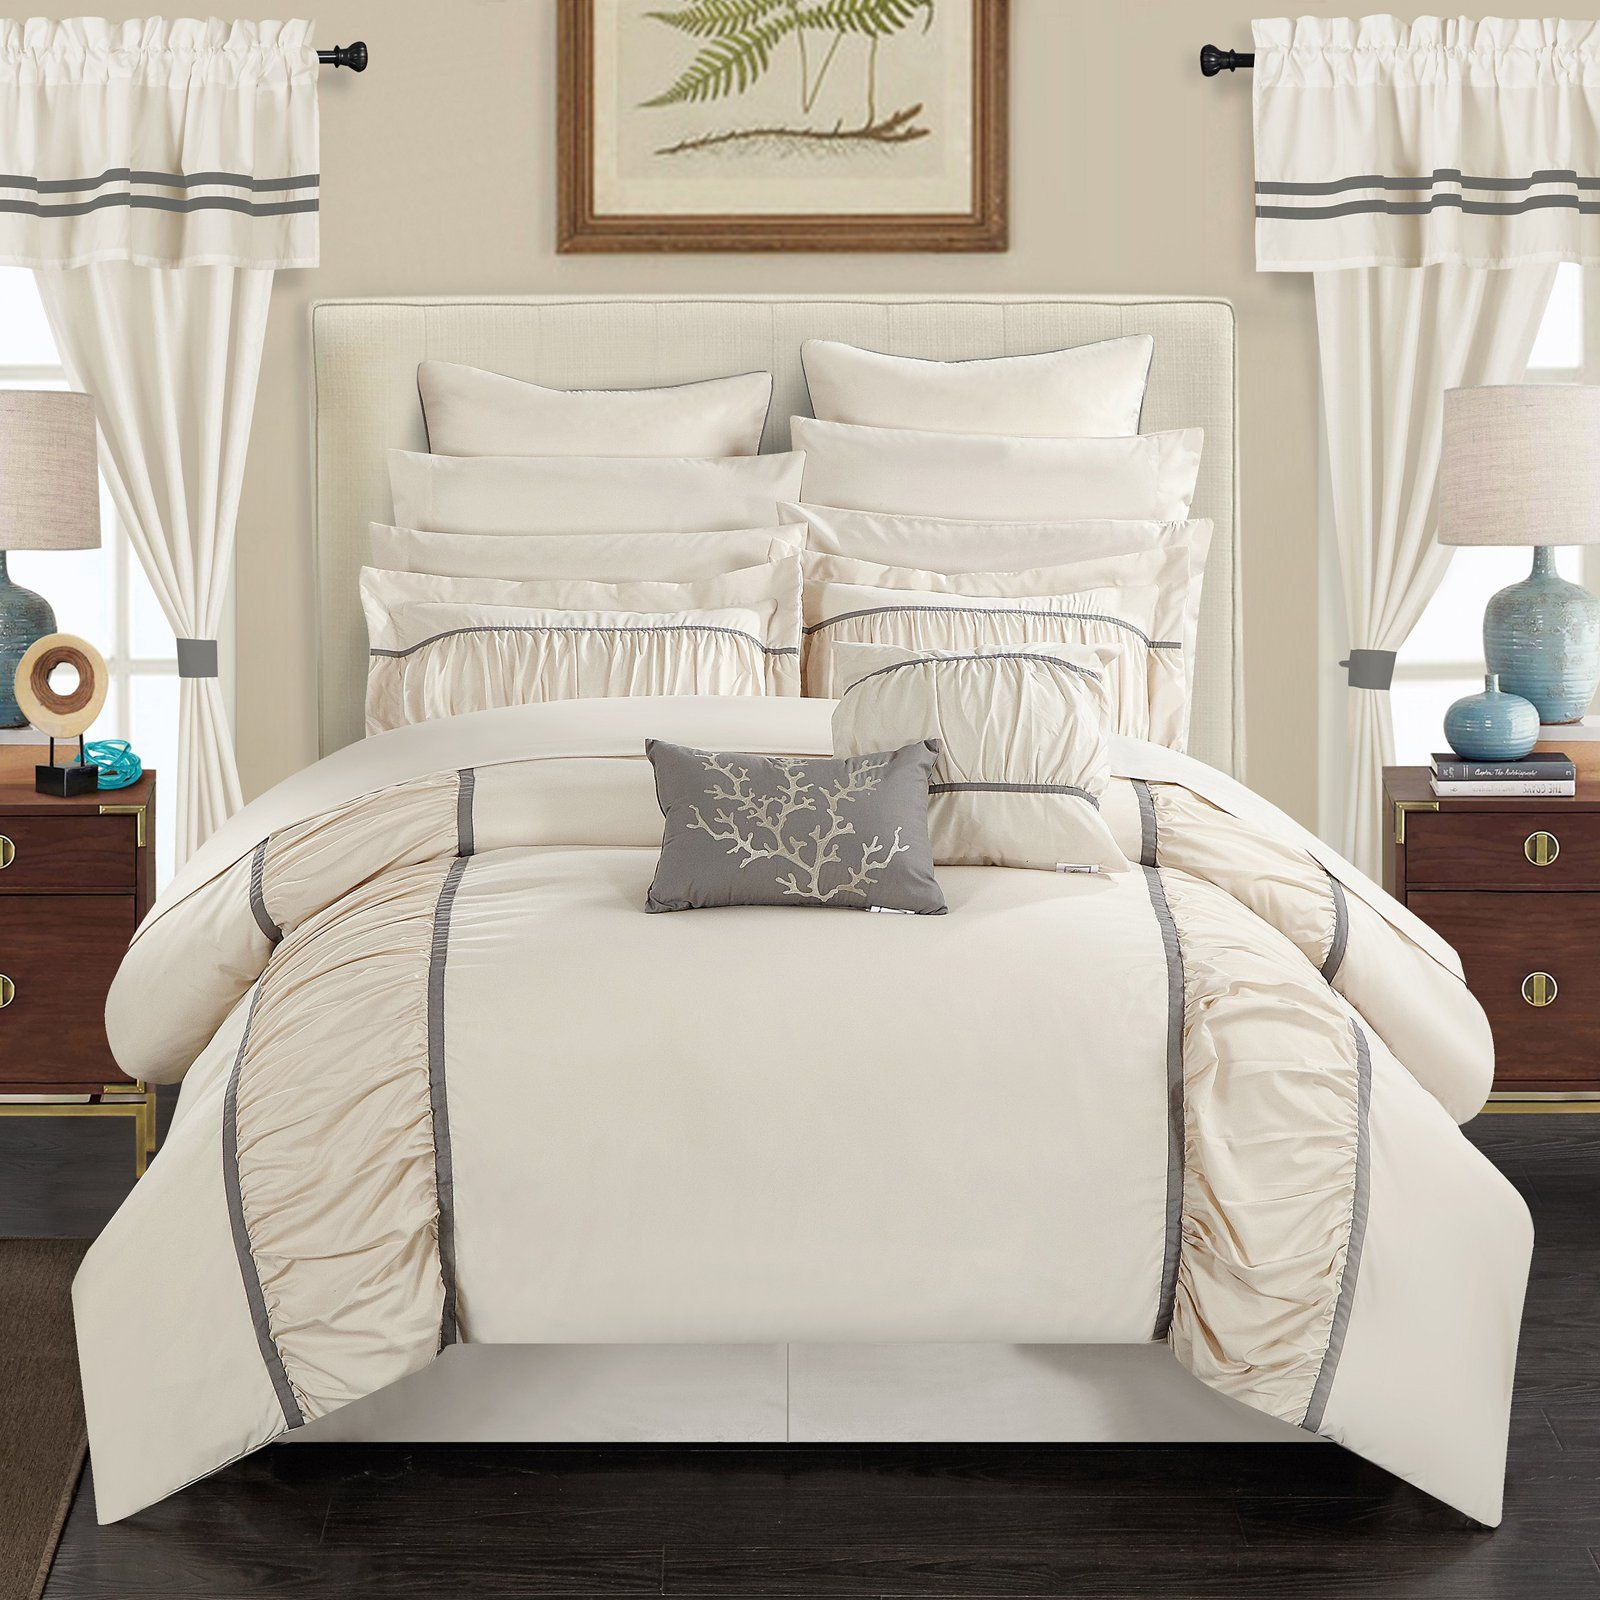 Auburn 24-Piece Bed In a Bag Queen Comforter Set by Chic ...